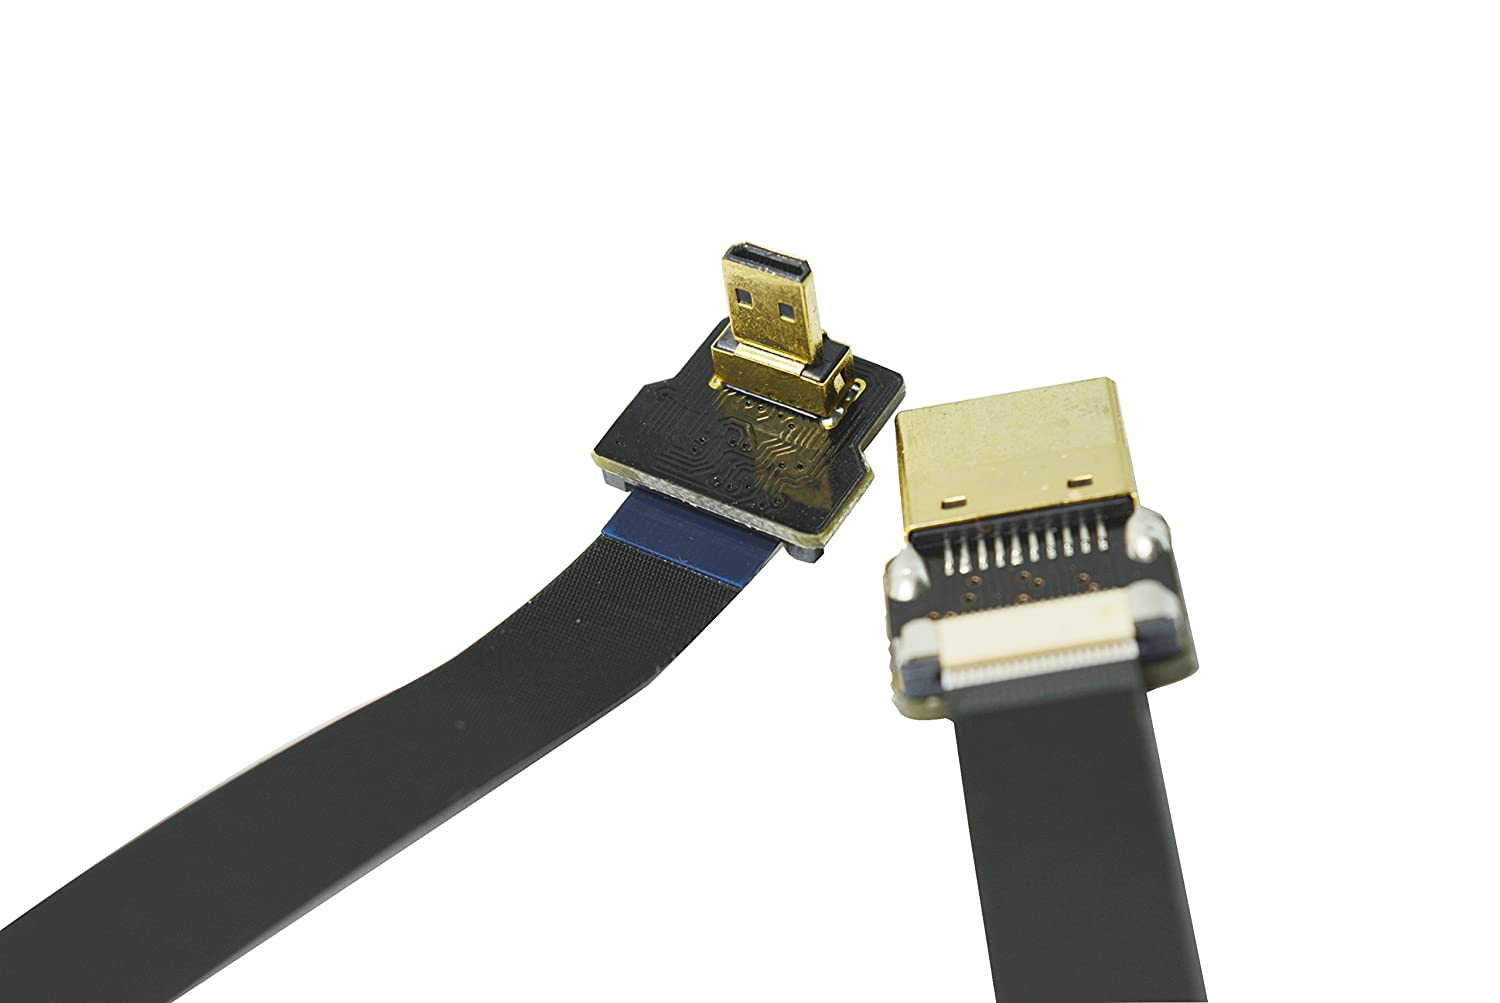 BLACK 20CM FPV HDMI Cable Micro HDMI male 90 degree angle to Standard HDMI full HDMI male Interface for Gopro Sony alpha sony A7RII A7SII A9 A6500 A6300(REVERSE SOCKET OF A6000) PI